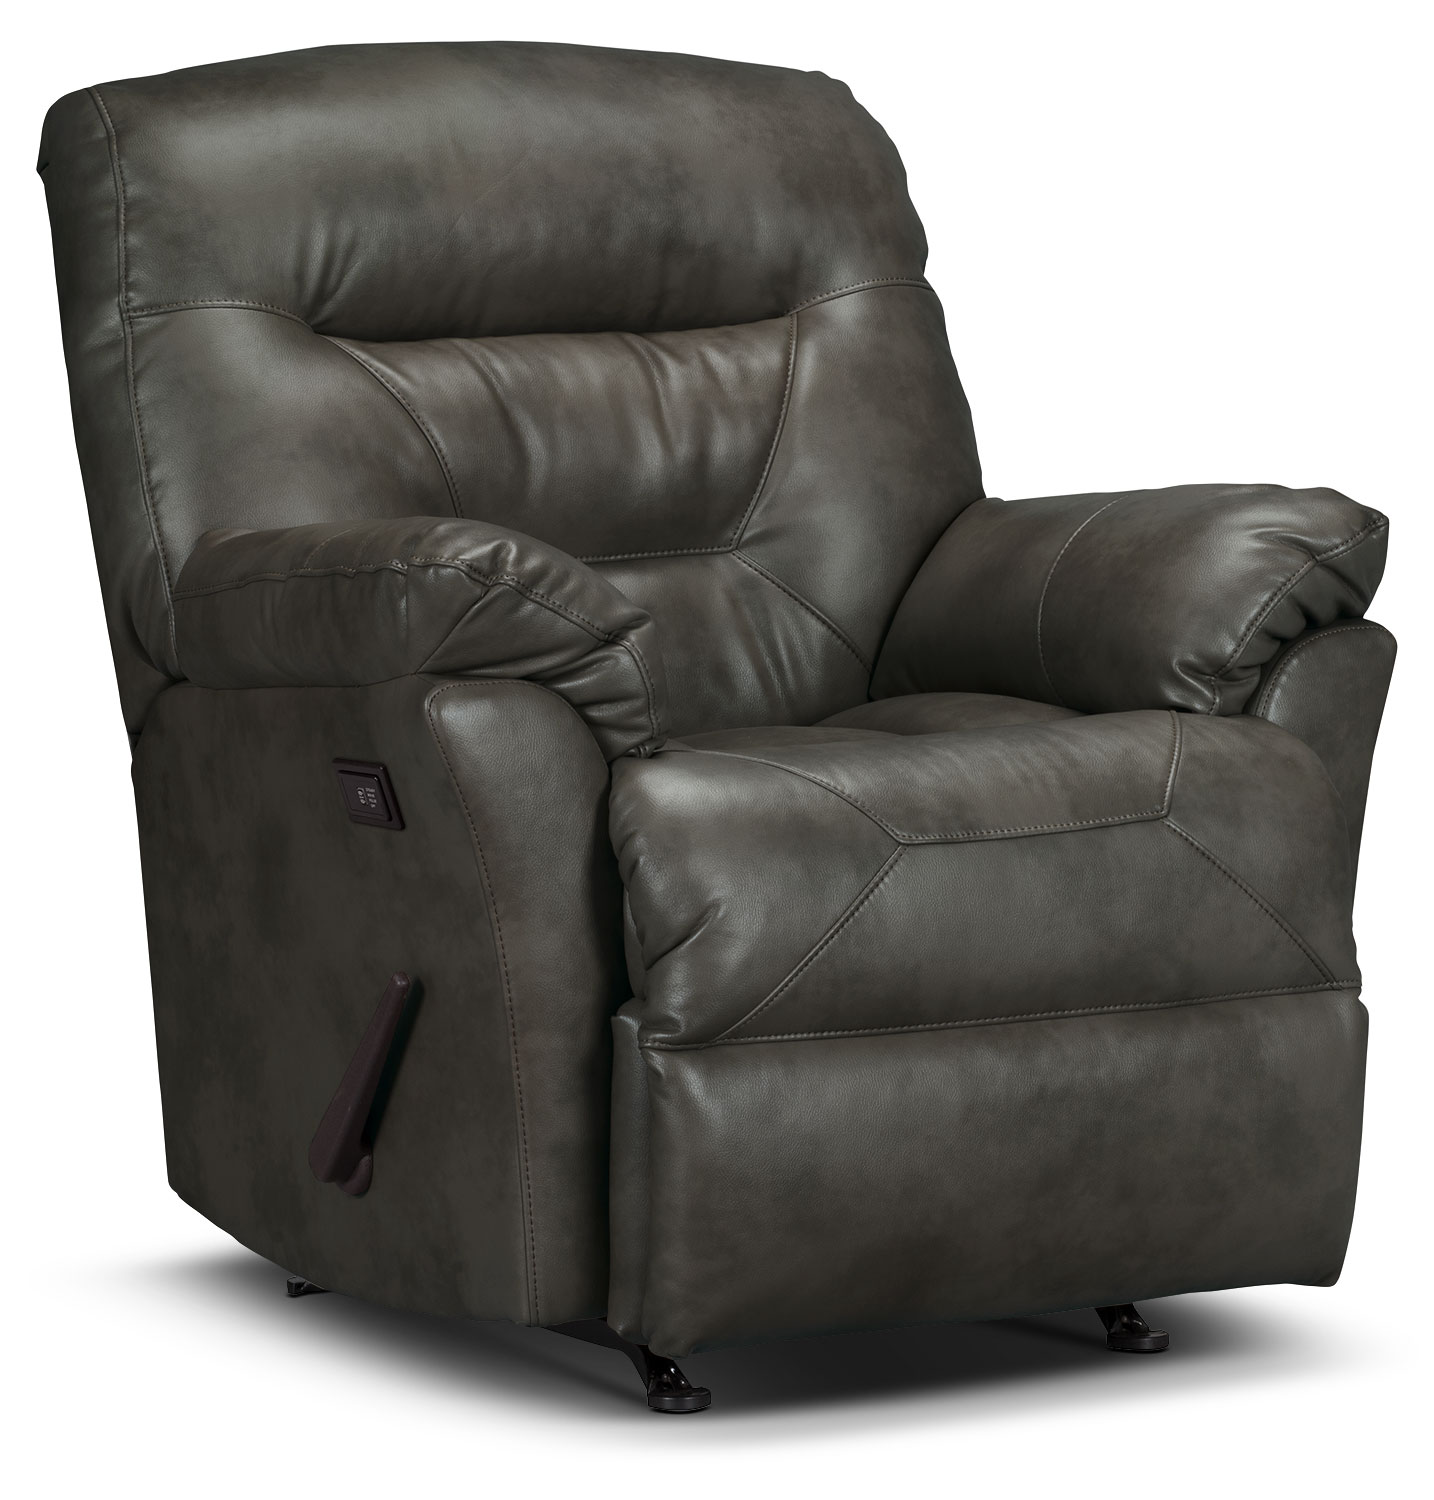 Designed2B Recliner 4579 Leather-Look Fabric Massage Recliner - Seal